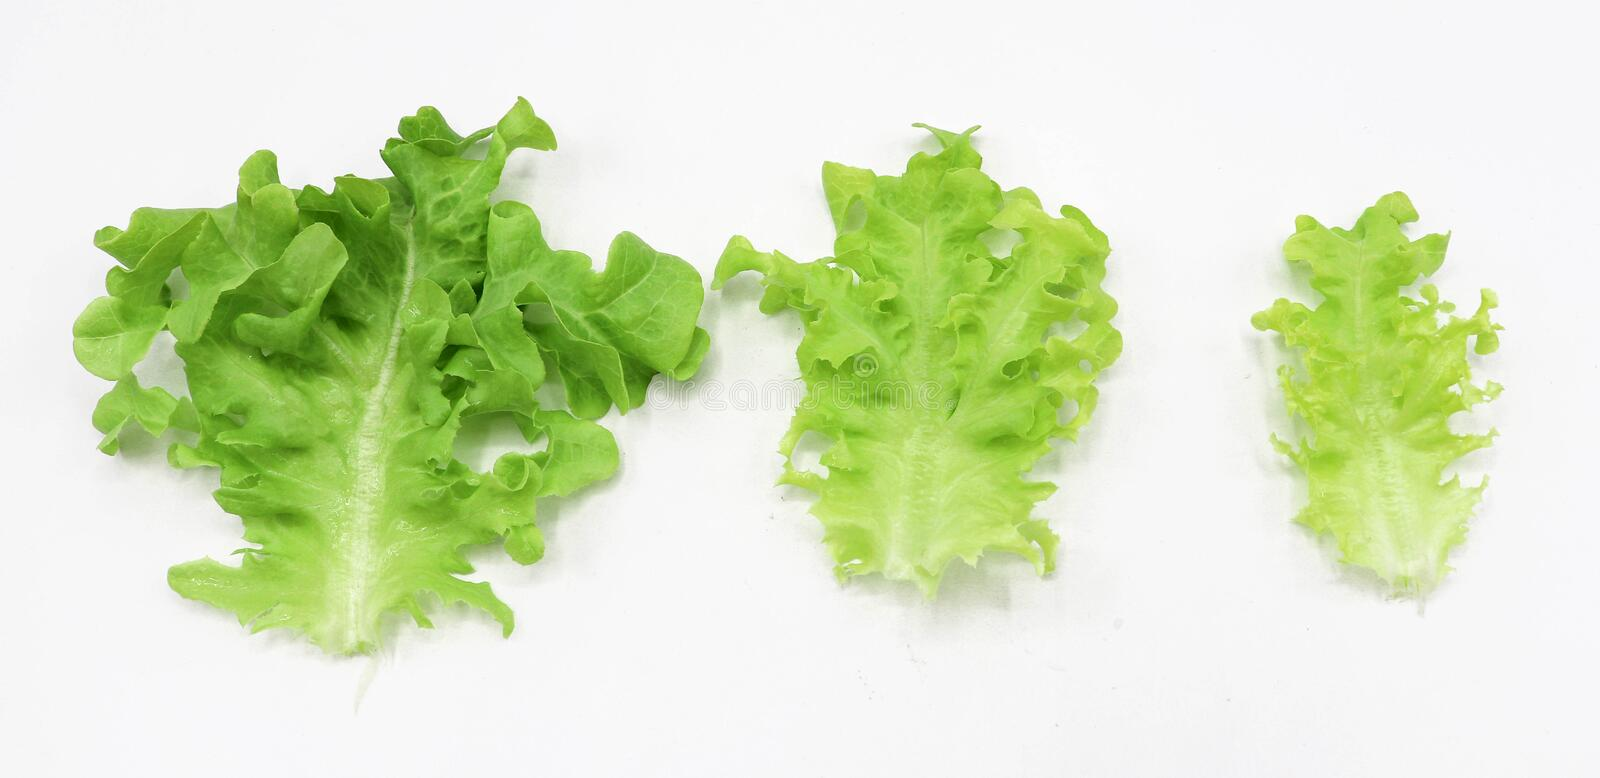 Organic Vegetable for salad green frillice iceberg lettuce isolated on white background royalty free stock photography